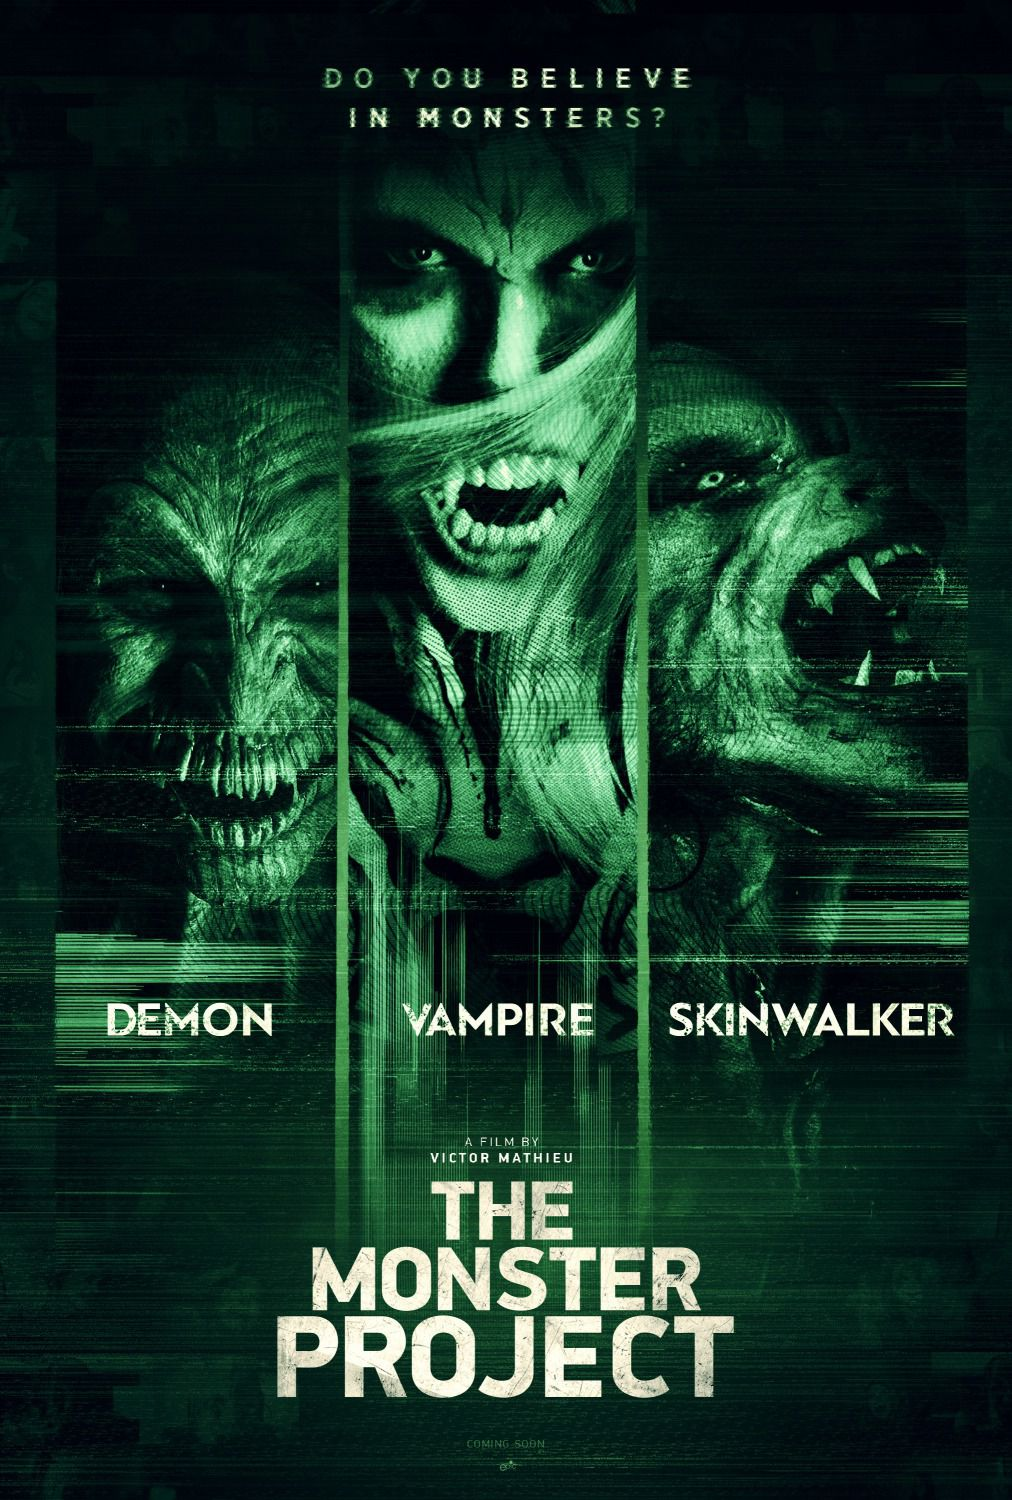 The Monster Project - movie horror poster